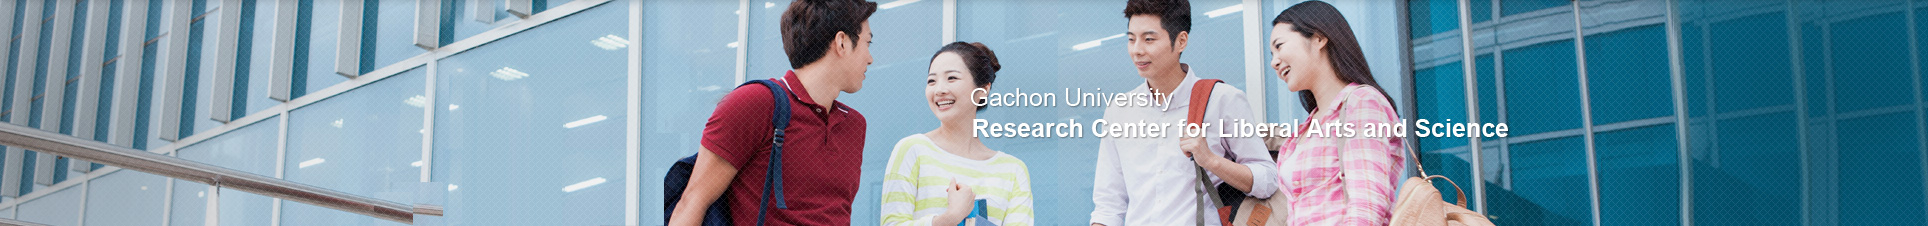 Gachon University Research Center for Liberal Arts and Science